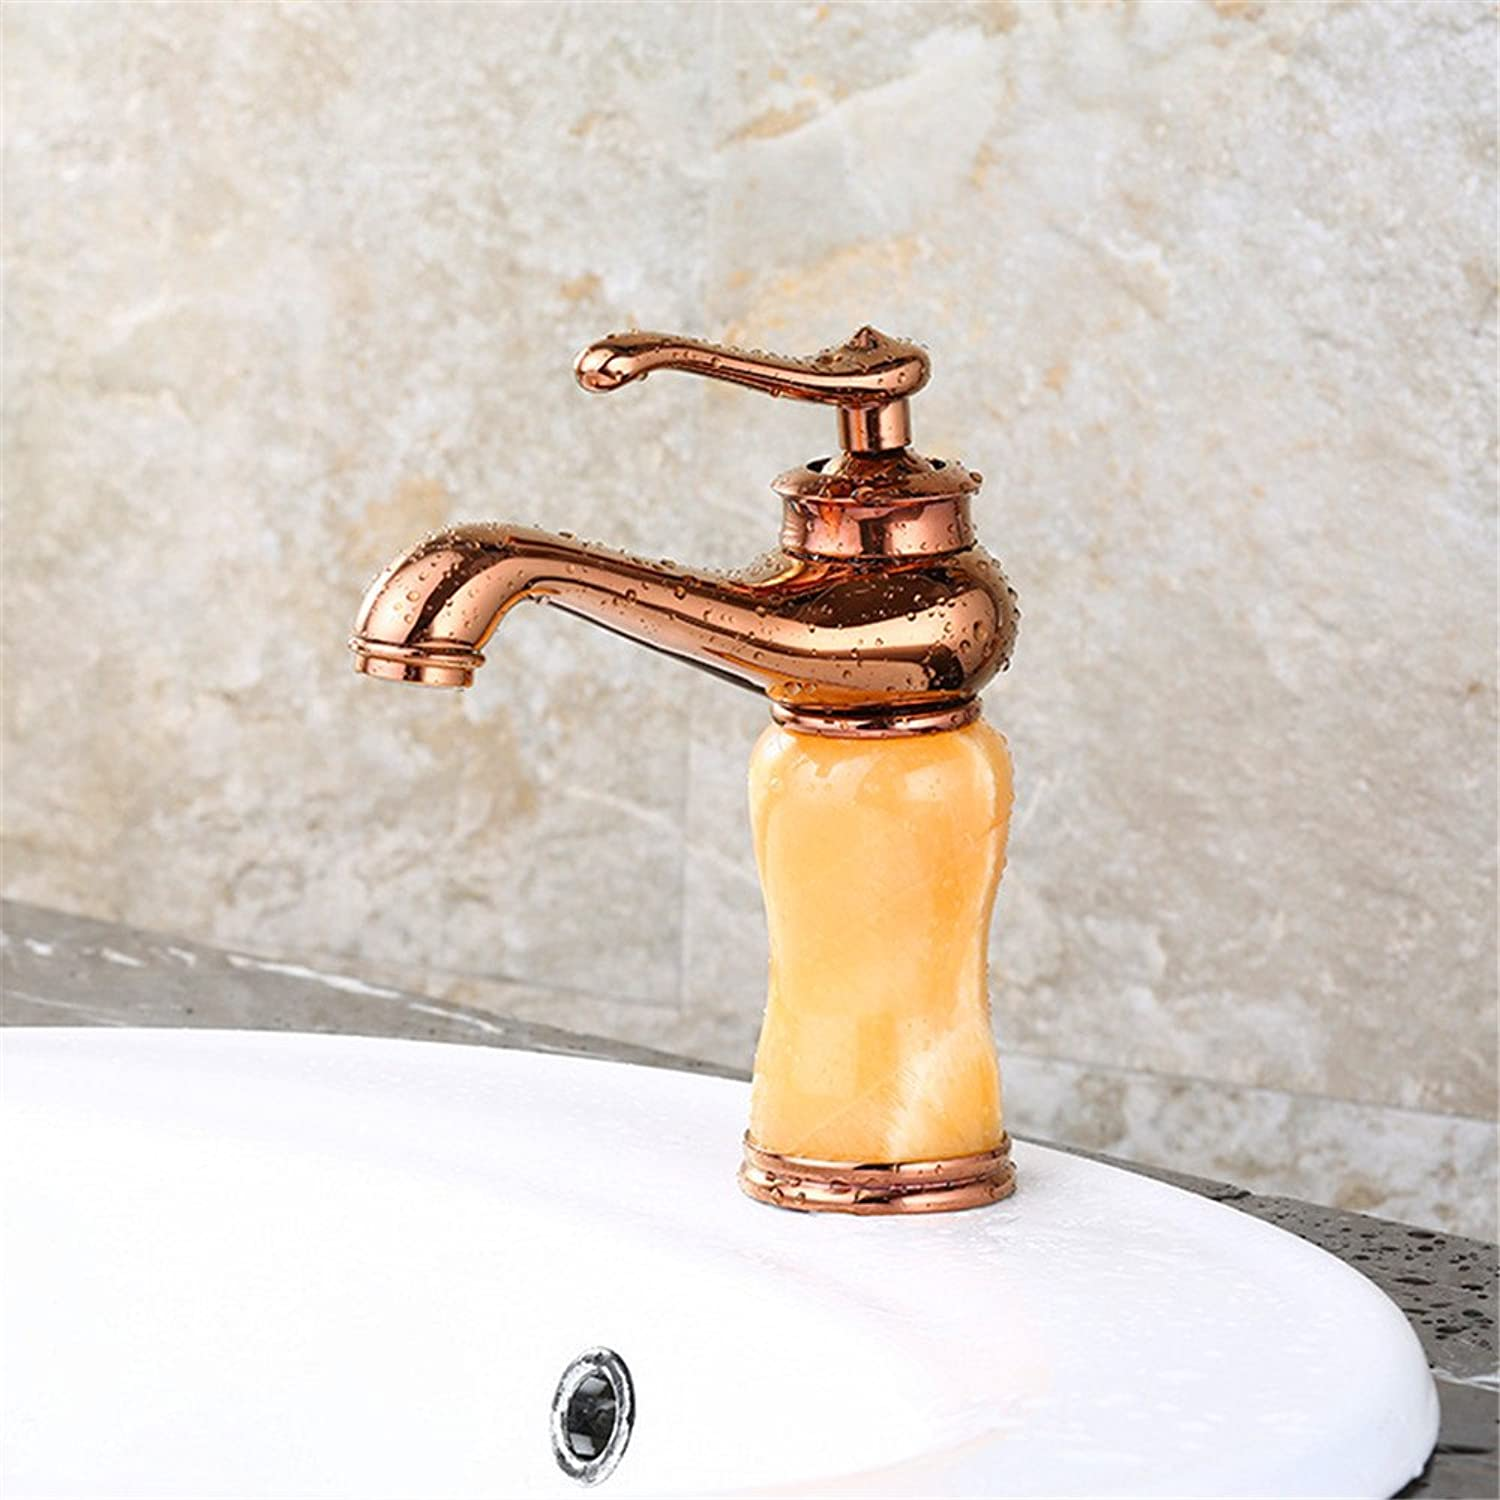 Hlluya Professional Sink Mixer Tap Kitchen Faucet The bathroom sink cold water faucet basin mixer full copper antique redating single hole faucet 7FDF